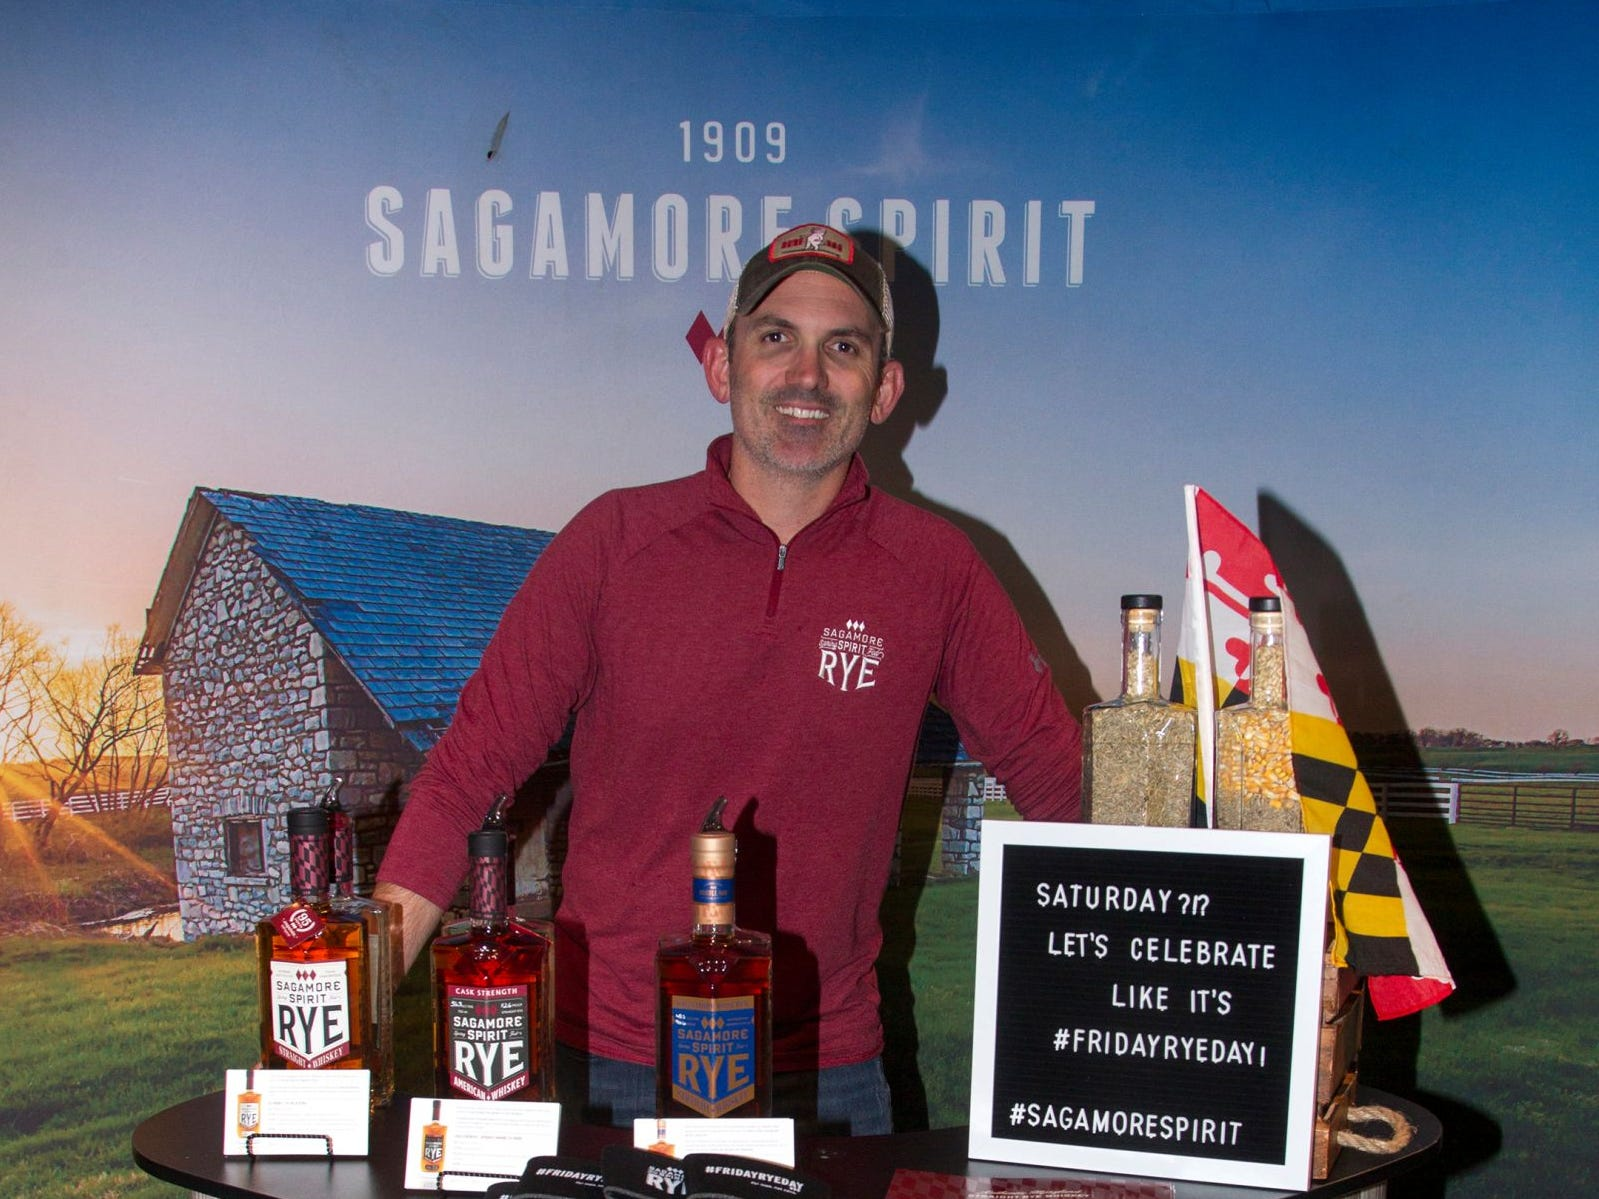 Sagamore Rye - Jack Shute. Jersey City Craft Distillery Fest at the Harborside Atrium featured more than 100 styles of spirits. Guests had the chance to taste craft-distilled spirits from moonshine, rum, cognac, whiskey, vodka, gin, tequila and more. 09/08/2018